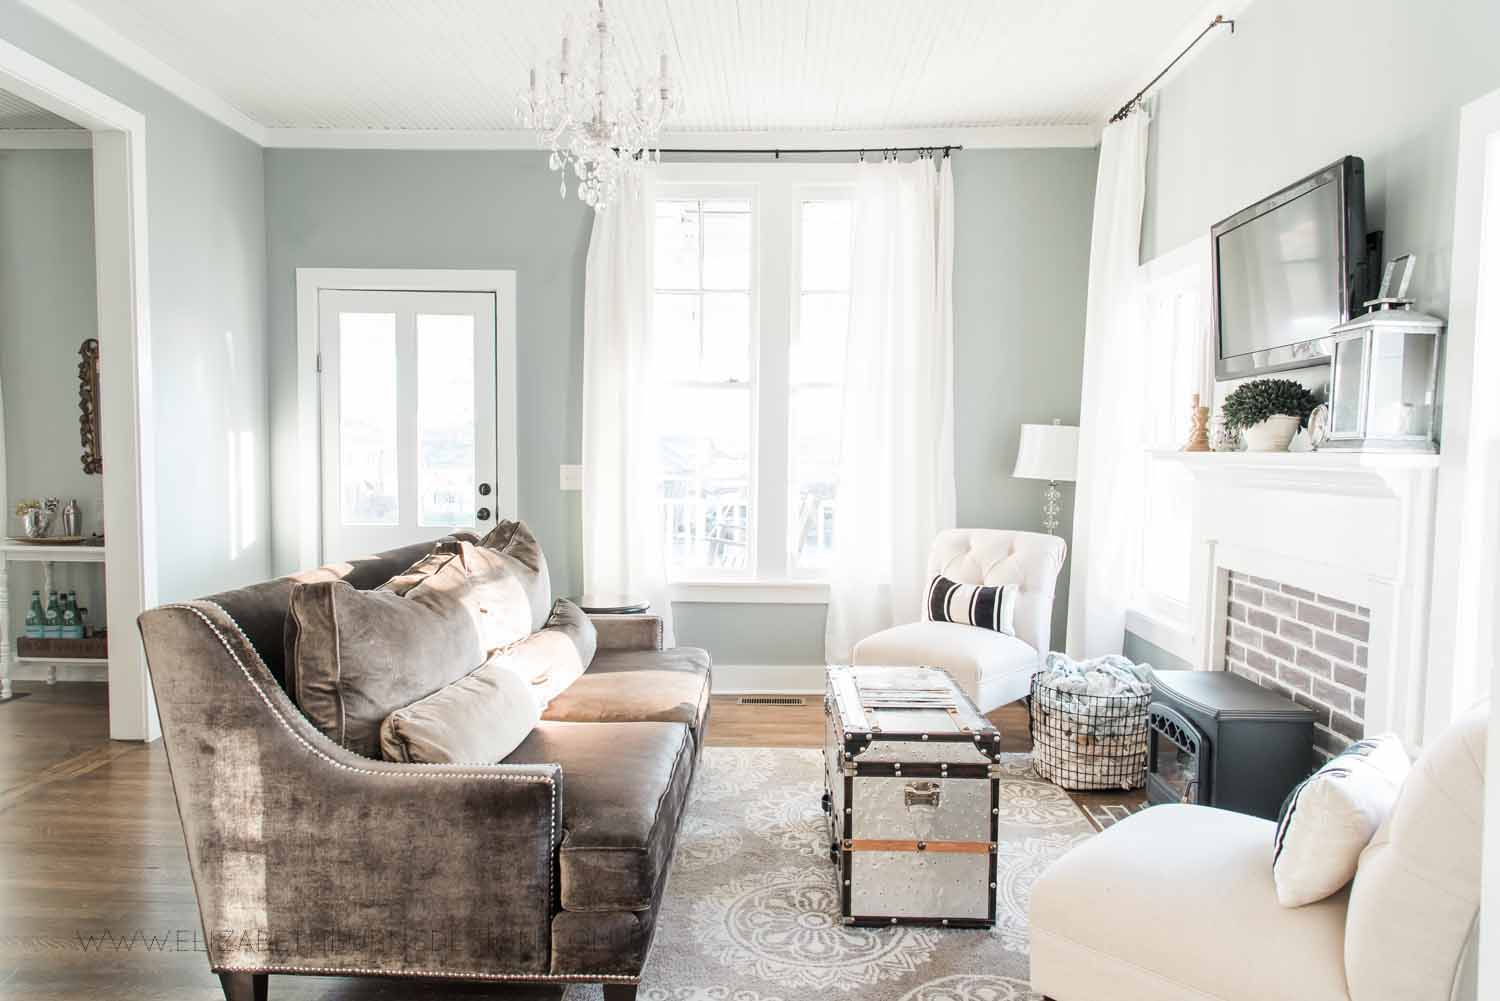 Elizabeth Burns Design Raleigh Interior Designer  Farmhouse Fixer Upper Cottage Renovation, Sherwin Williams Magnetic Gray SW 7058 Traditional Living Room (1).jpg